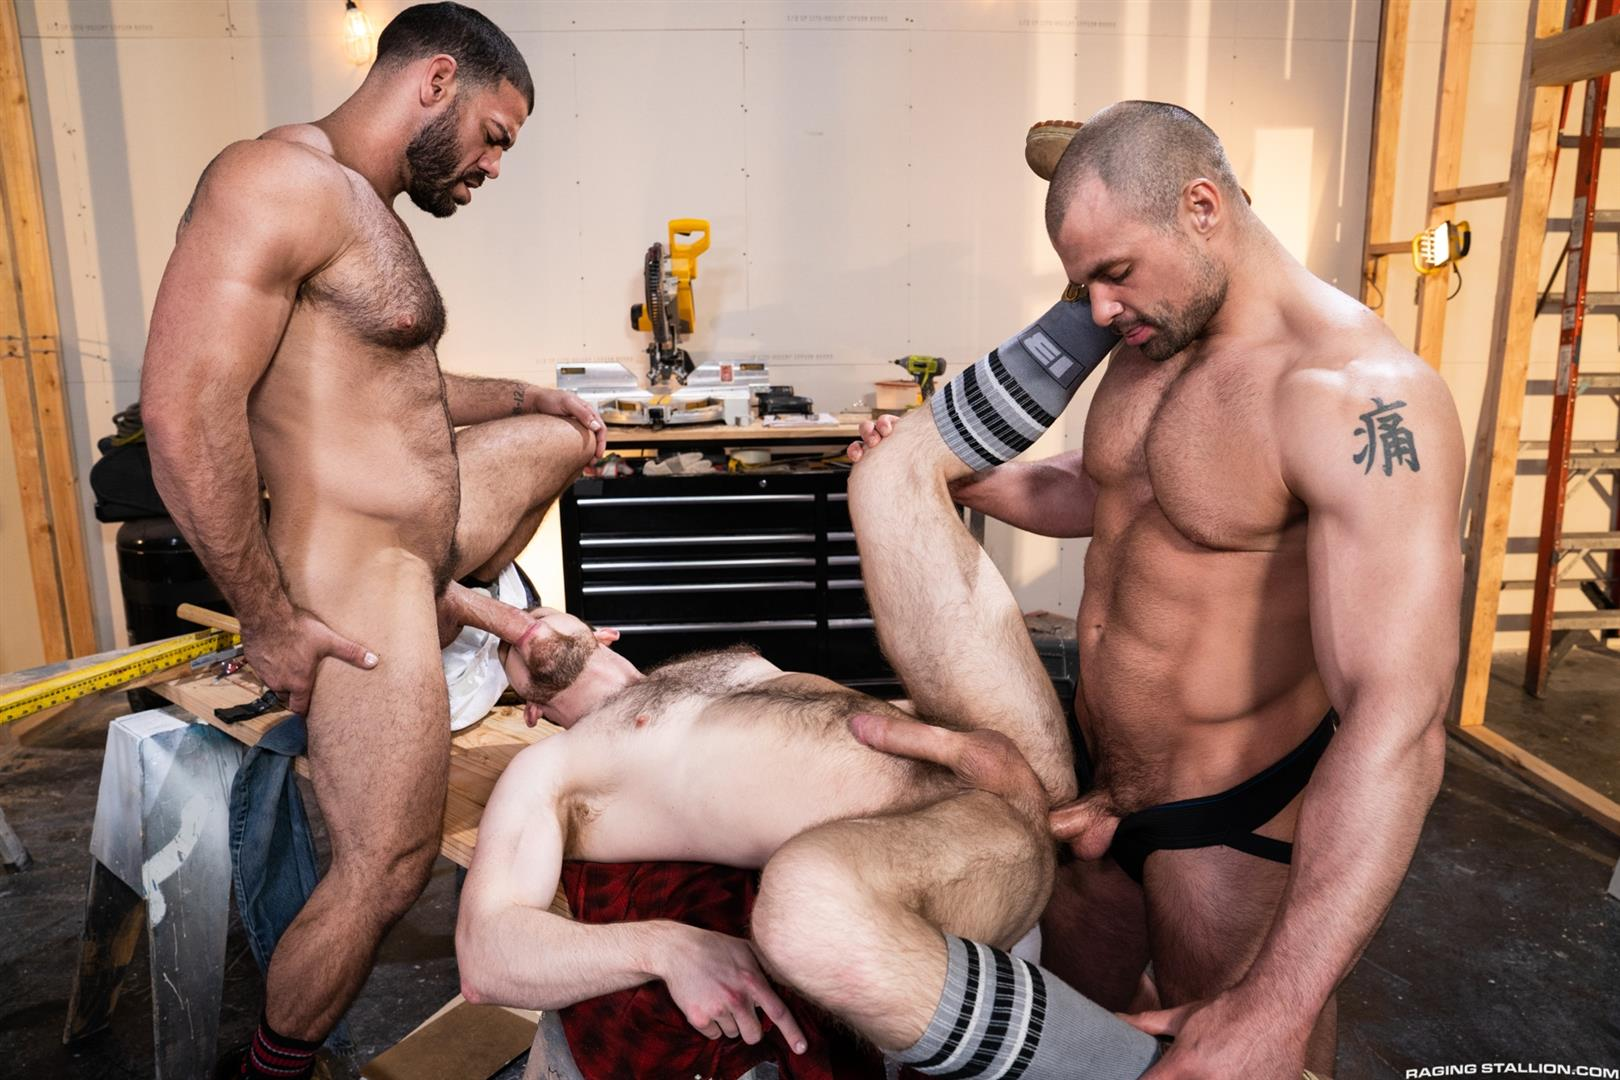 Raging-Stallion-Ricky-Larkin-and-Kurtis-Wolfe-and-Jaxx-Thanatos-Hairy-Muscle-Bareback-13 Hairy Muscle Hunks Ricky Larkin, Kurtis Wolfe and Jaxx Thanatos Bareback Fucking On The Job Site